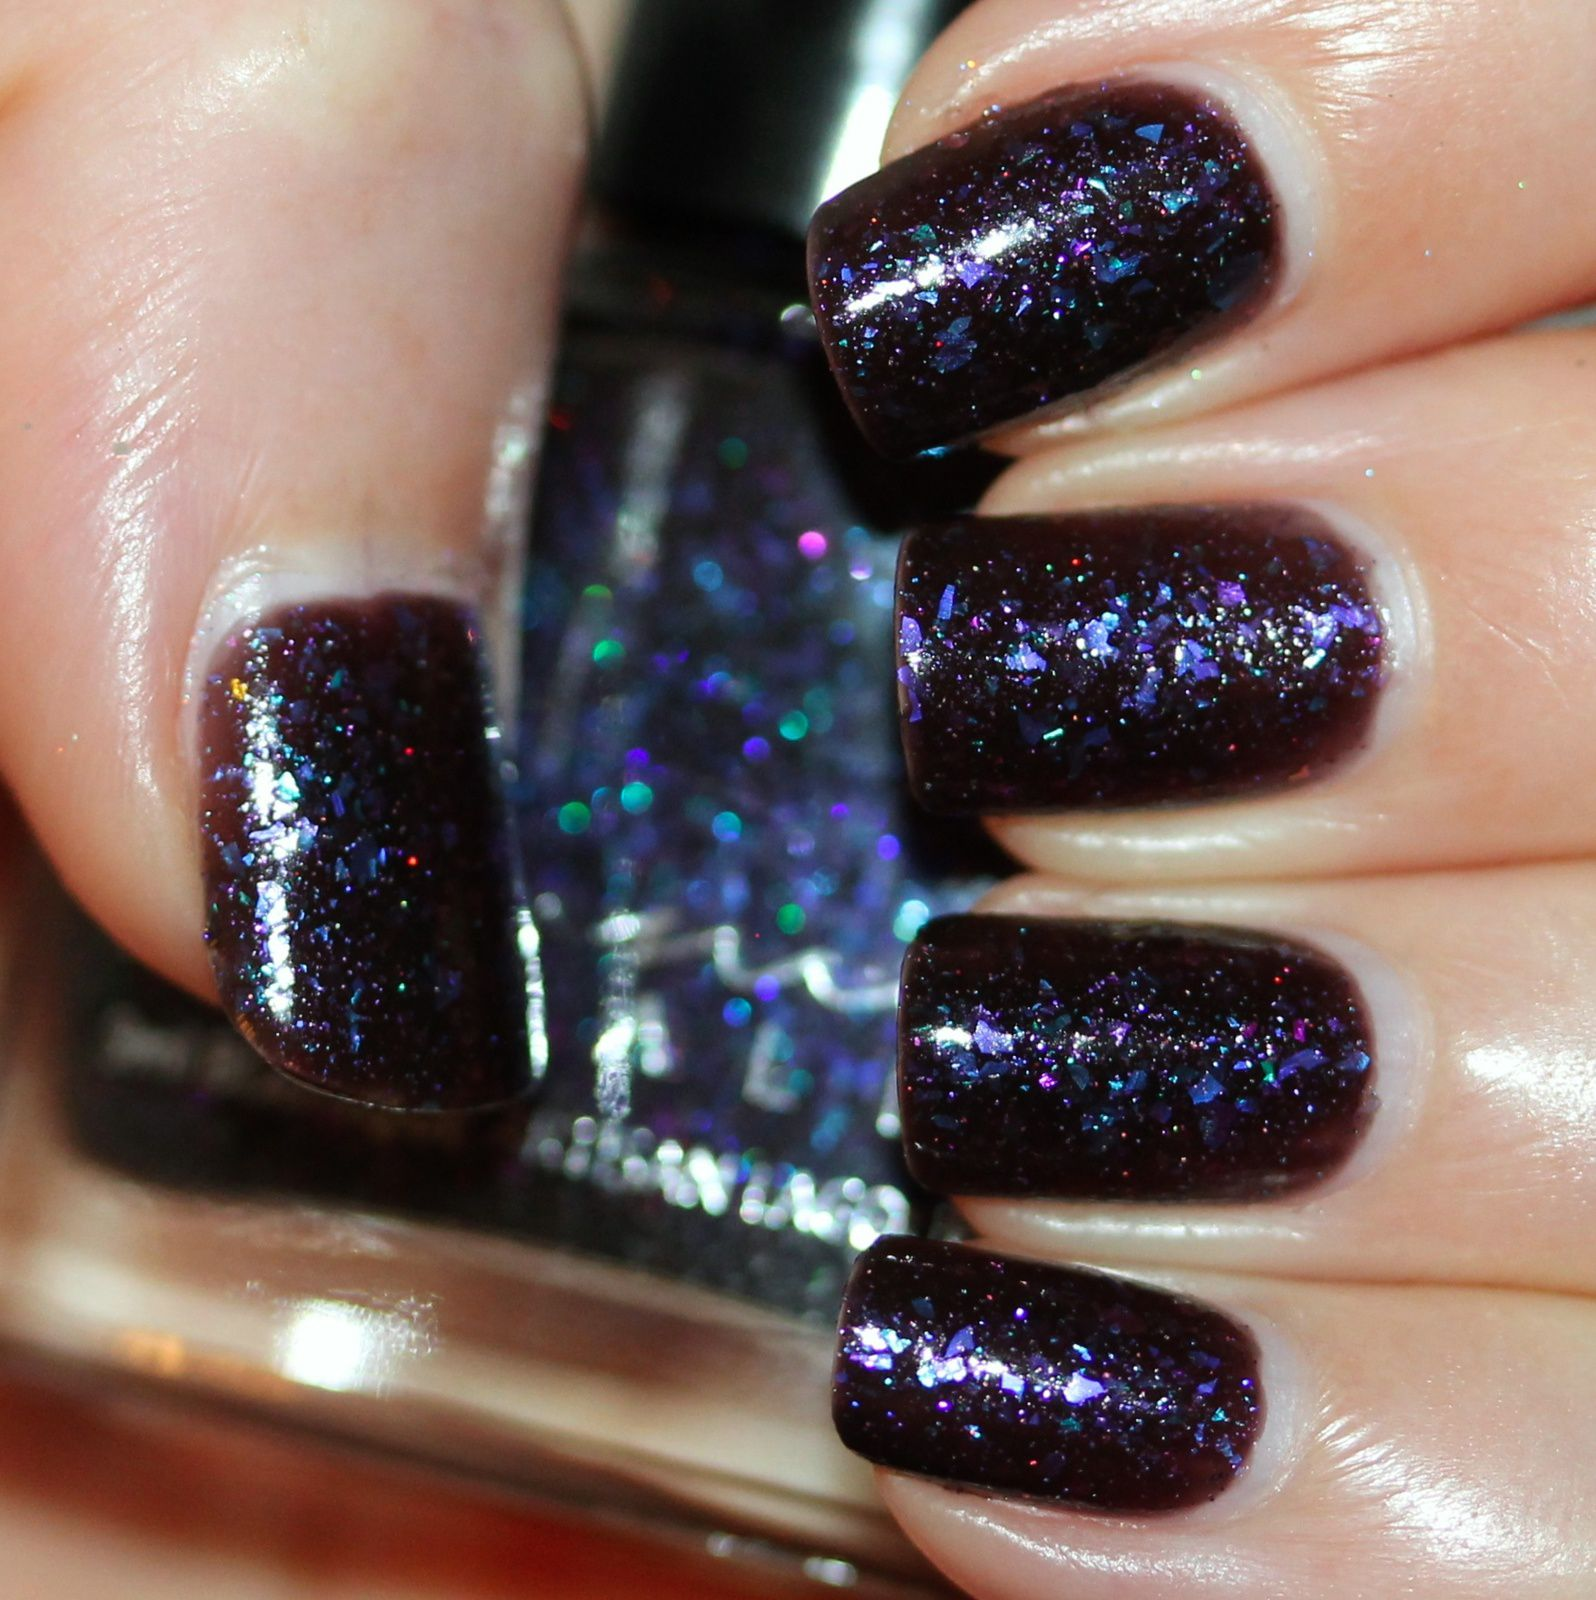 Femme Fatale Cosmetics Celestial Sea (3 coats, no top coat)